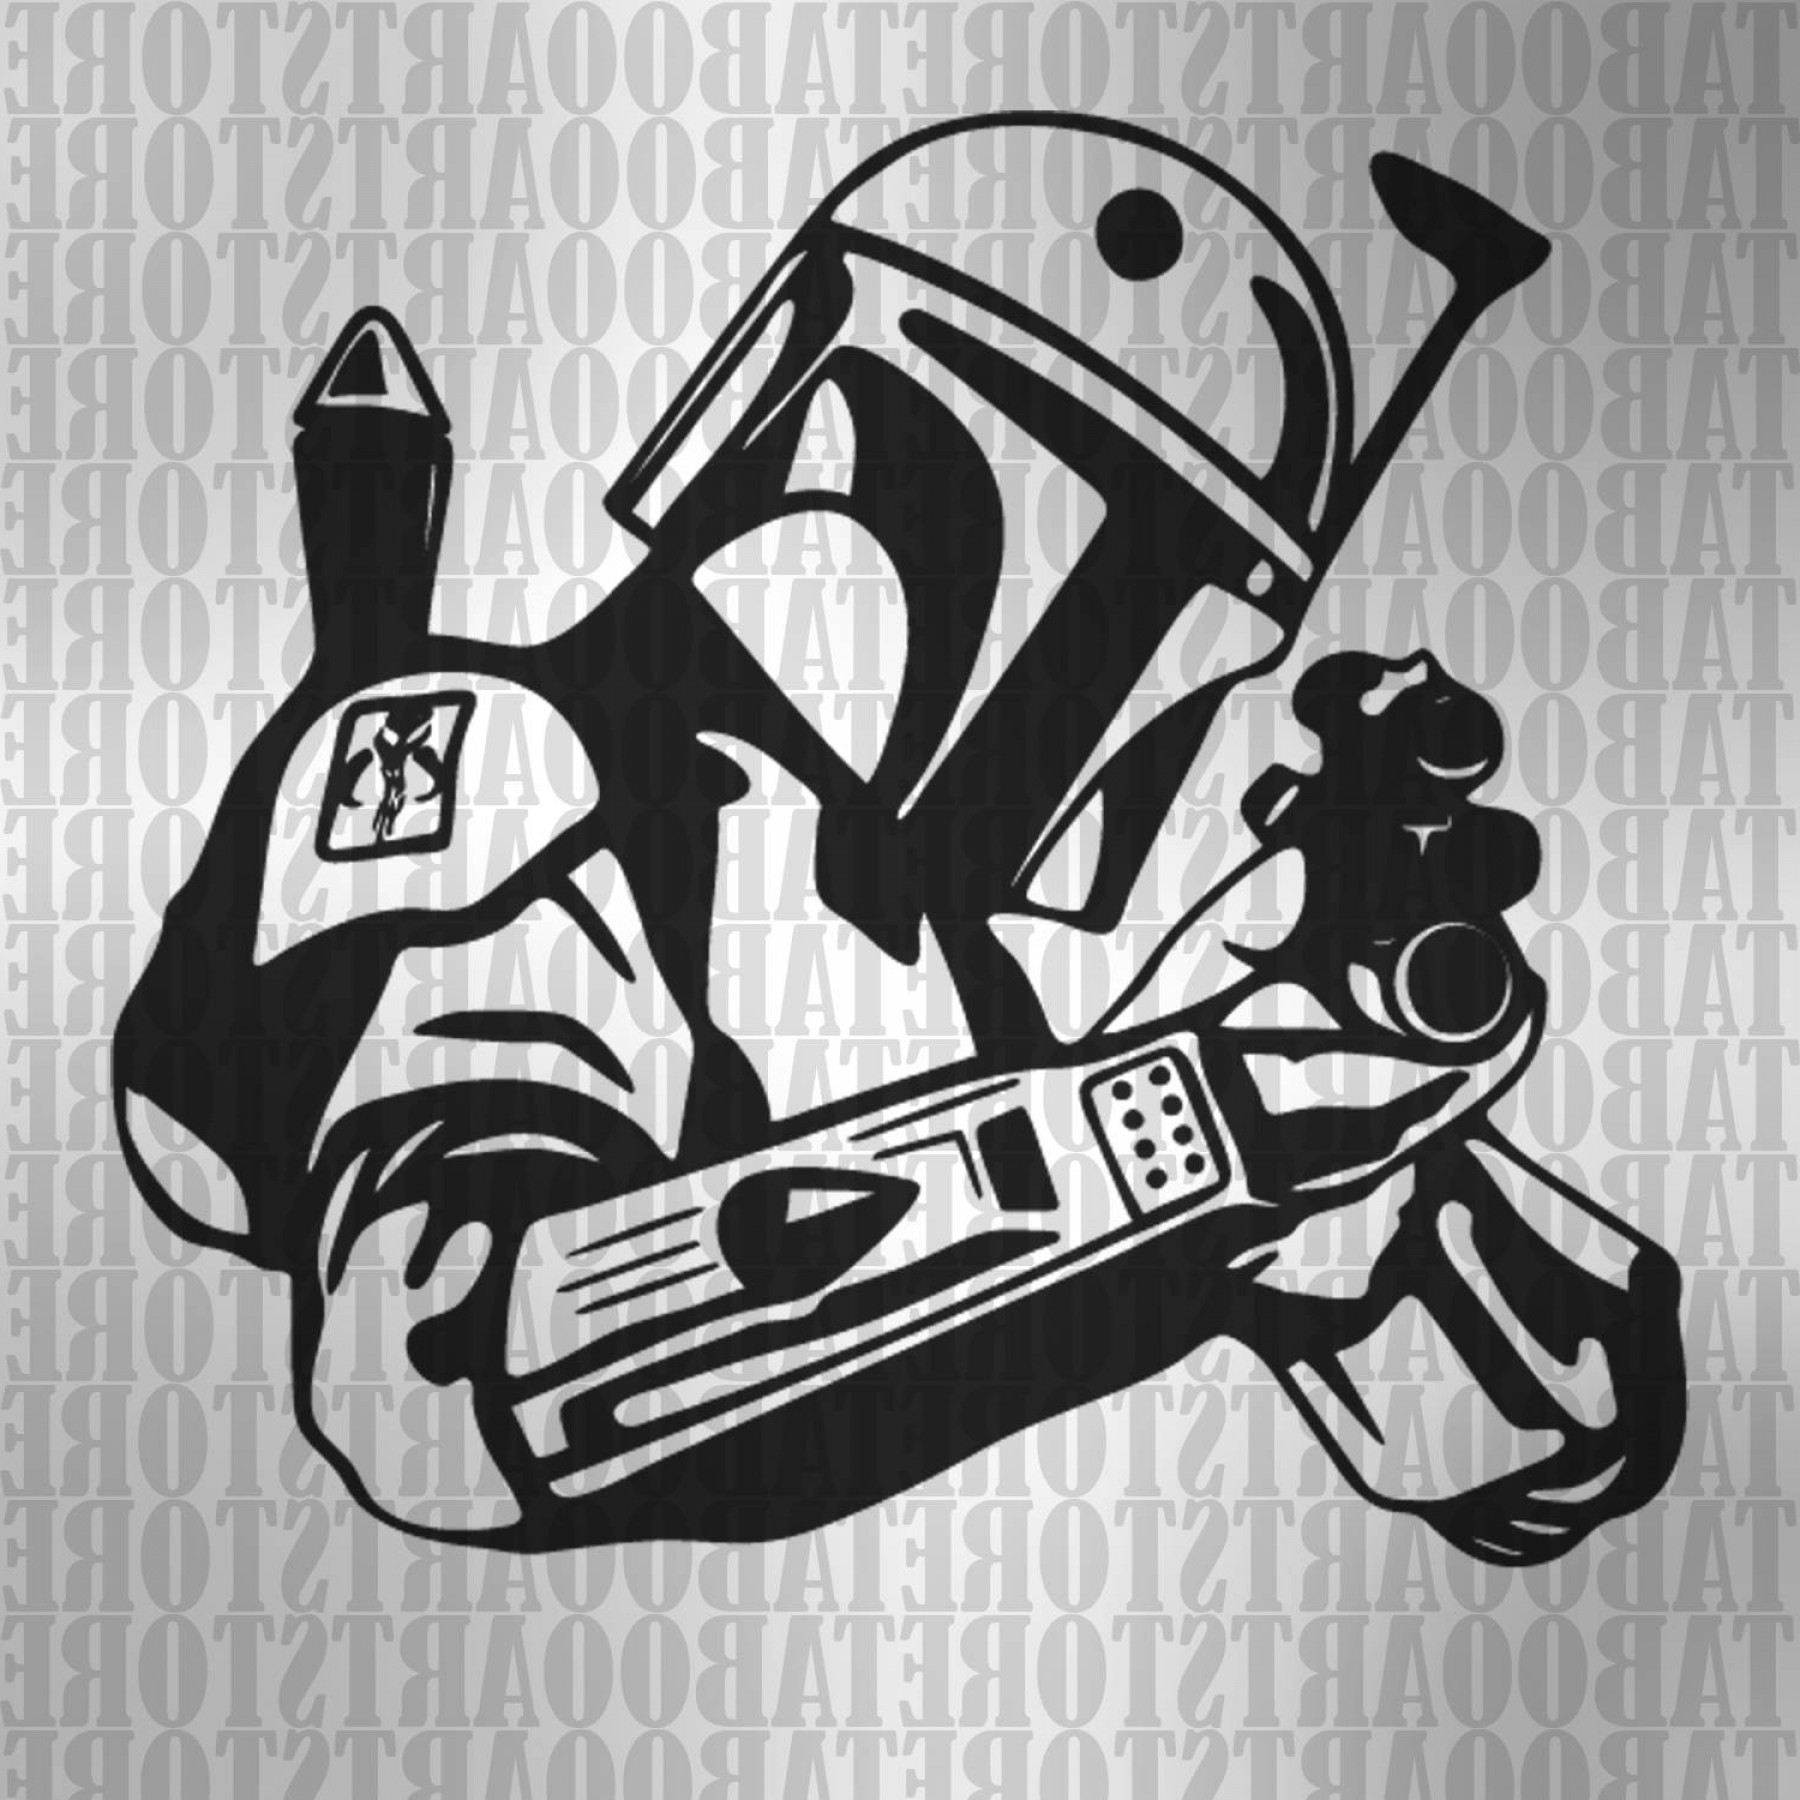 Boba Fett Vector Black And White: Star Wars Clipart Boba Fett Svg Star